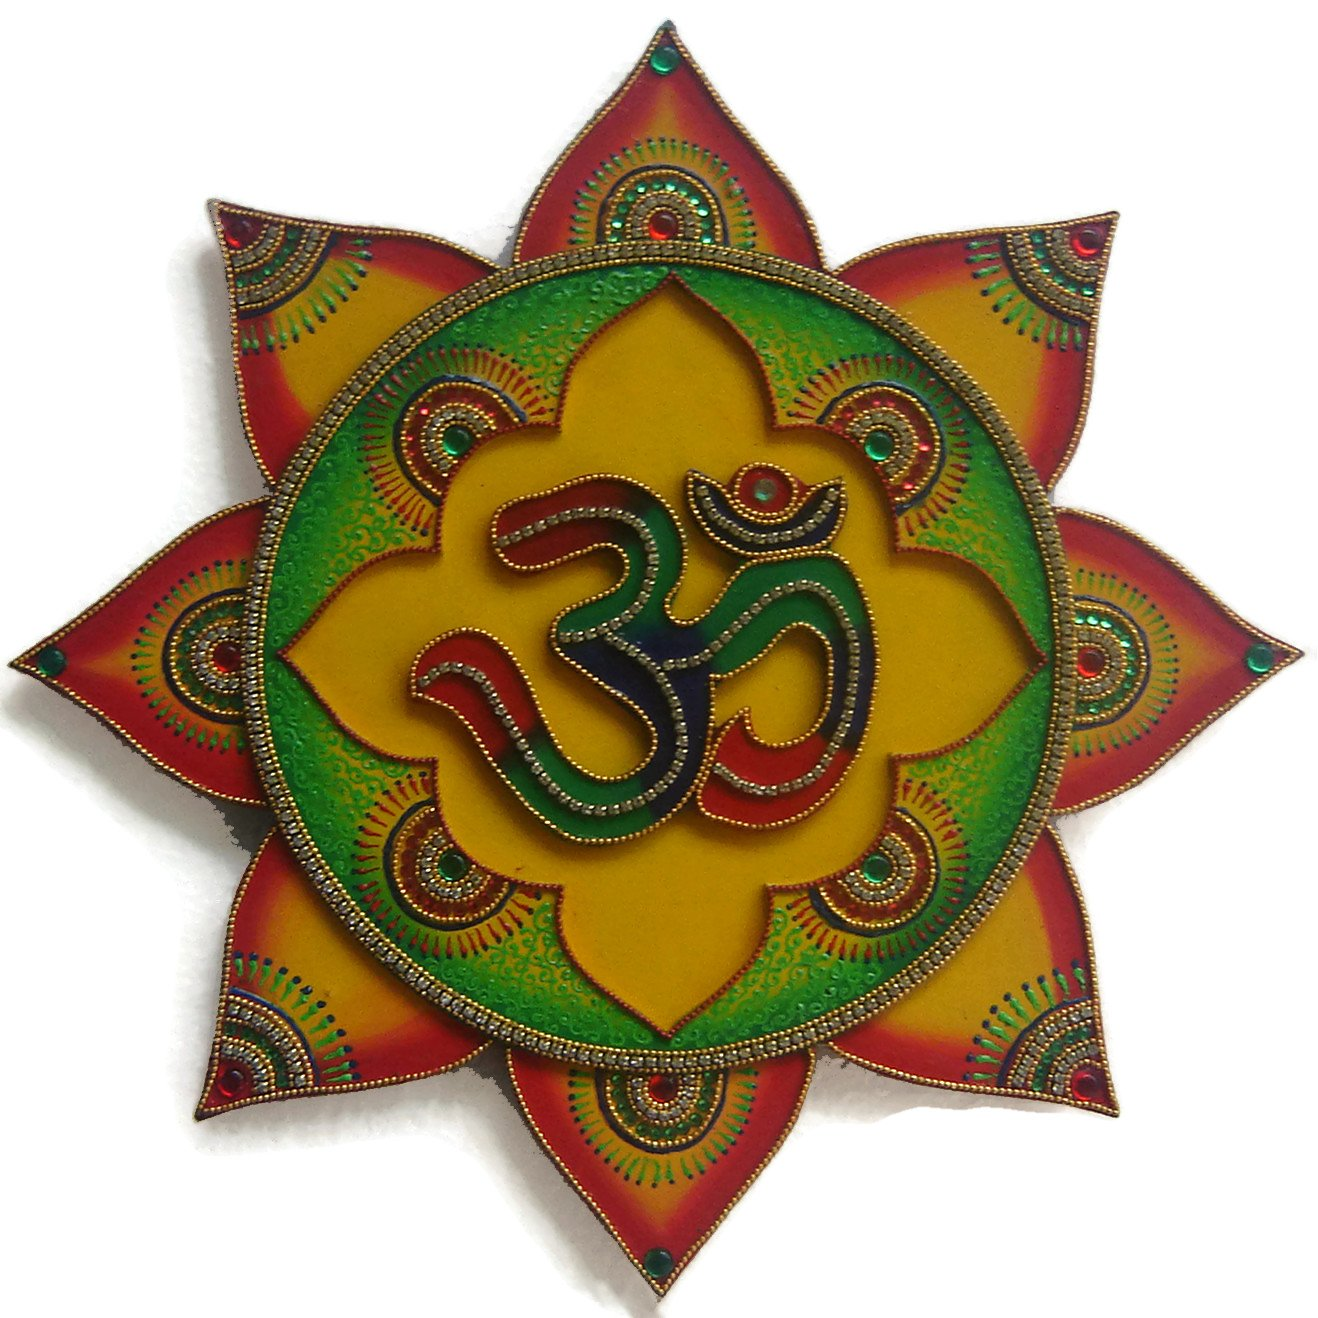 Om Symbol - Om Sign - Wall Painting - Wall Decor for Living Room - Handmade Hand Painted Hand Decorated - Hindu Art - Inspired by Temples In India - Multicolour by EthnicAvenue (Image #1)